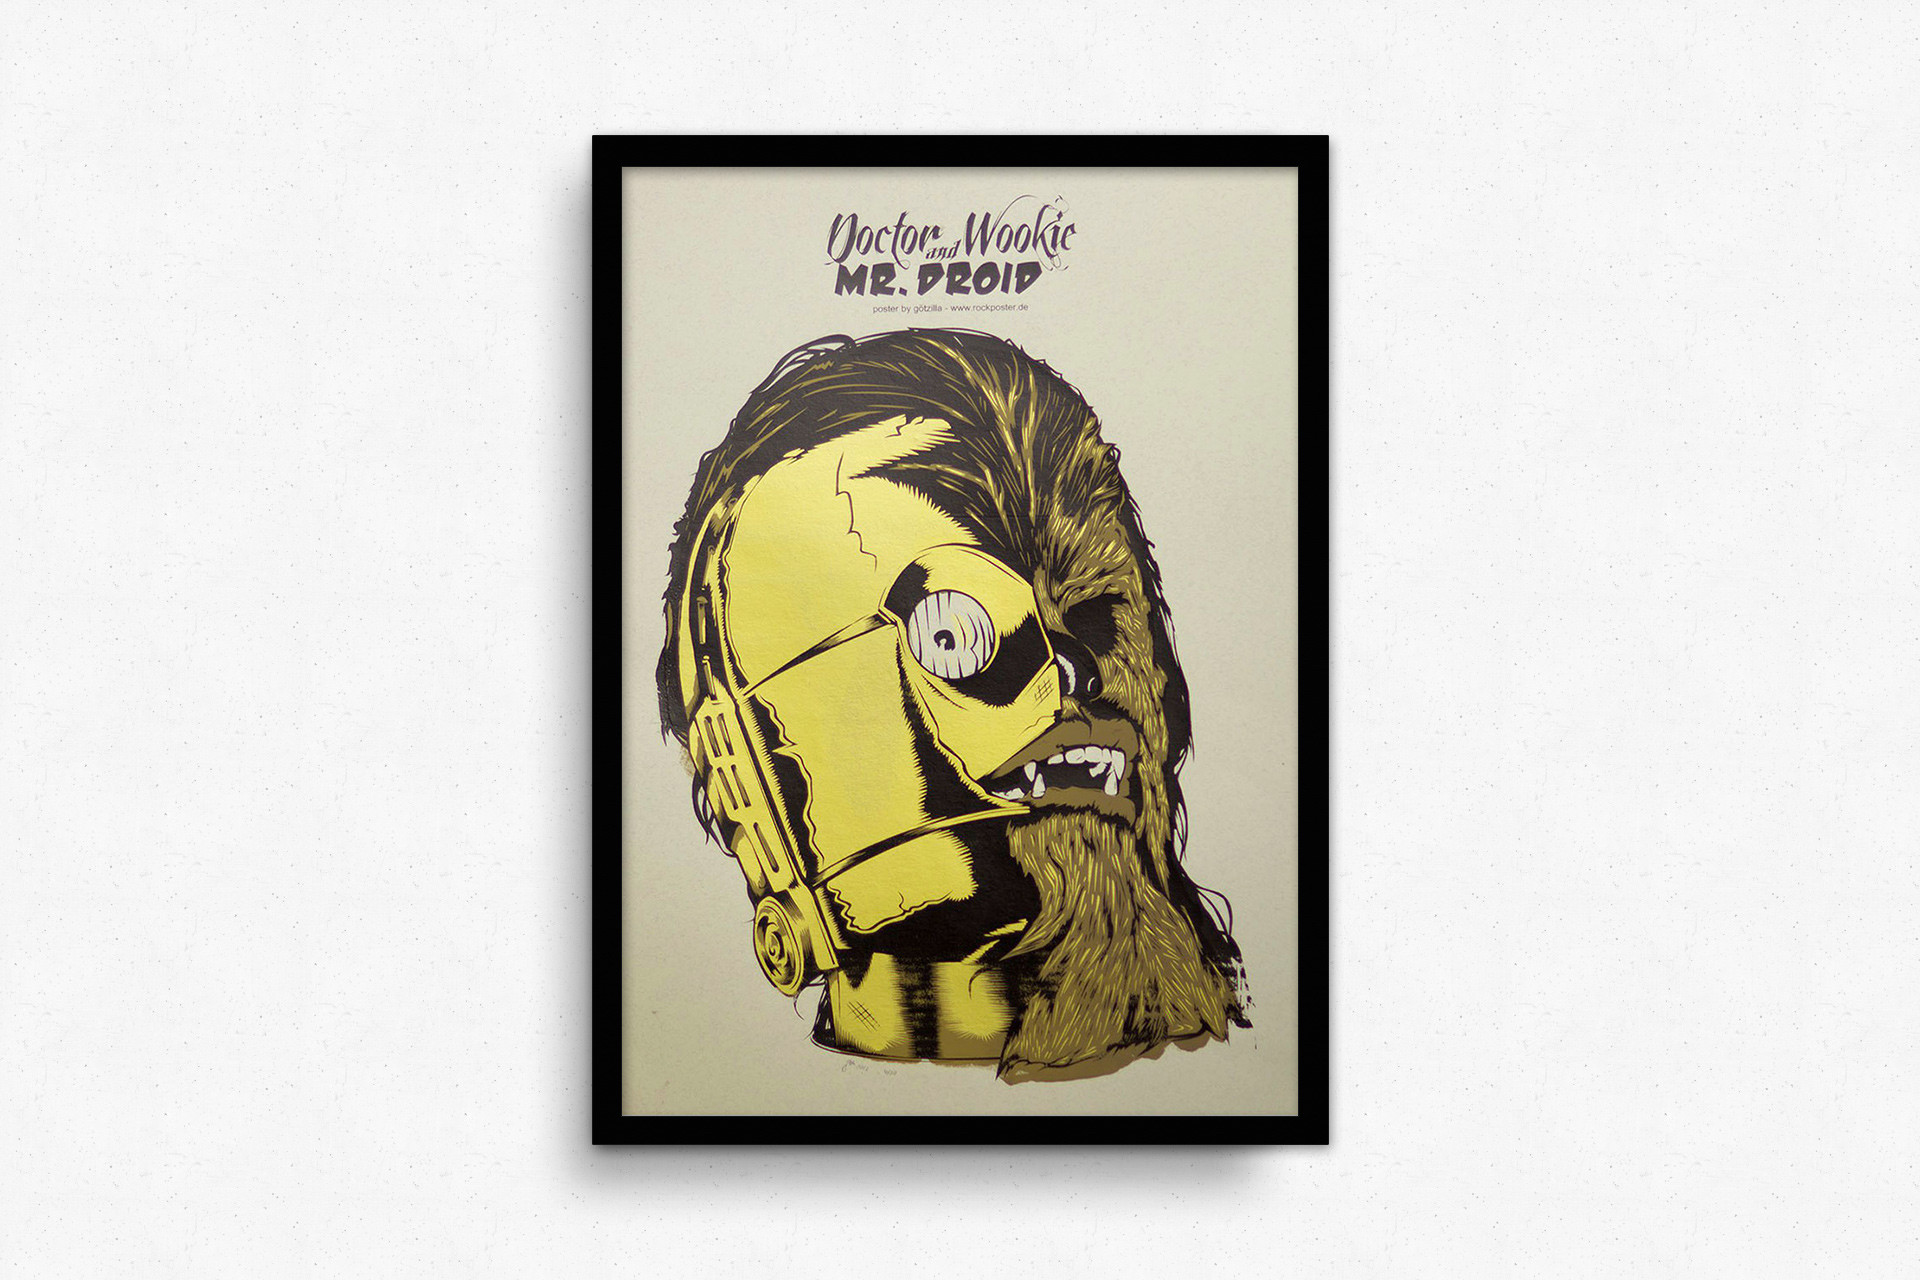 Dr. Wookie & Mr. Droid - Artprint